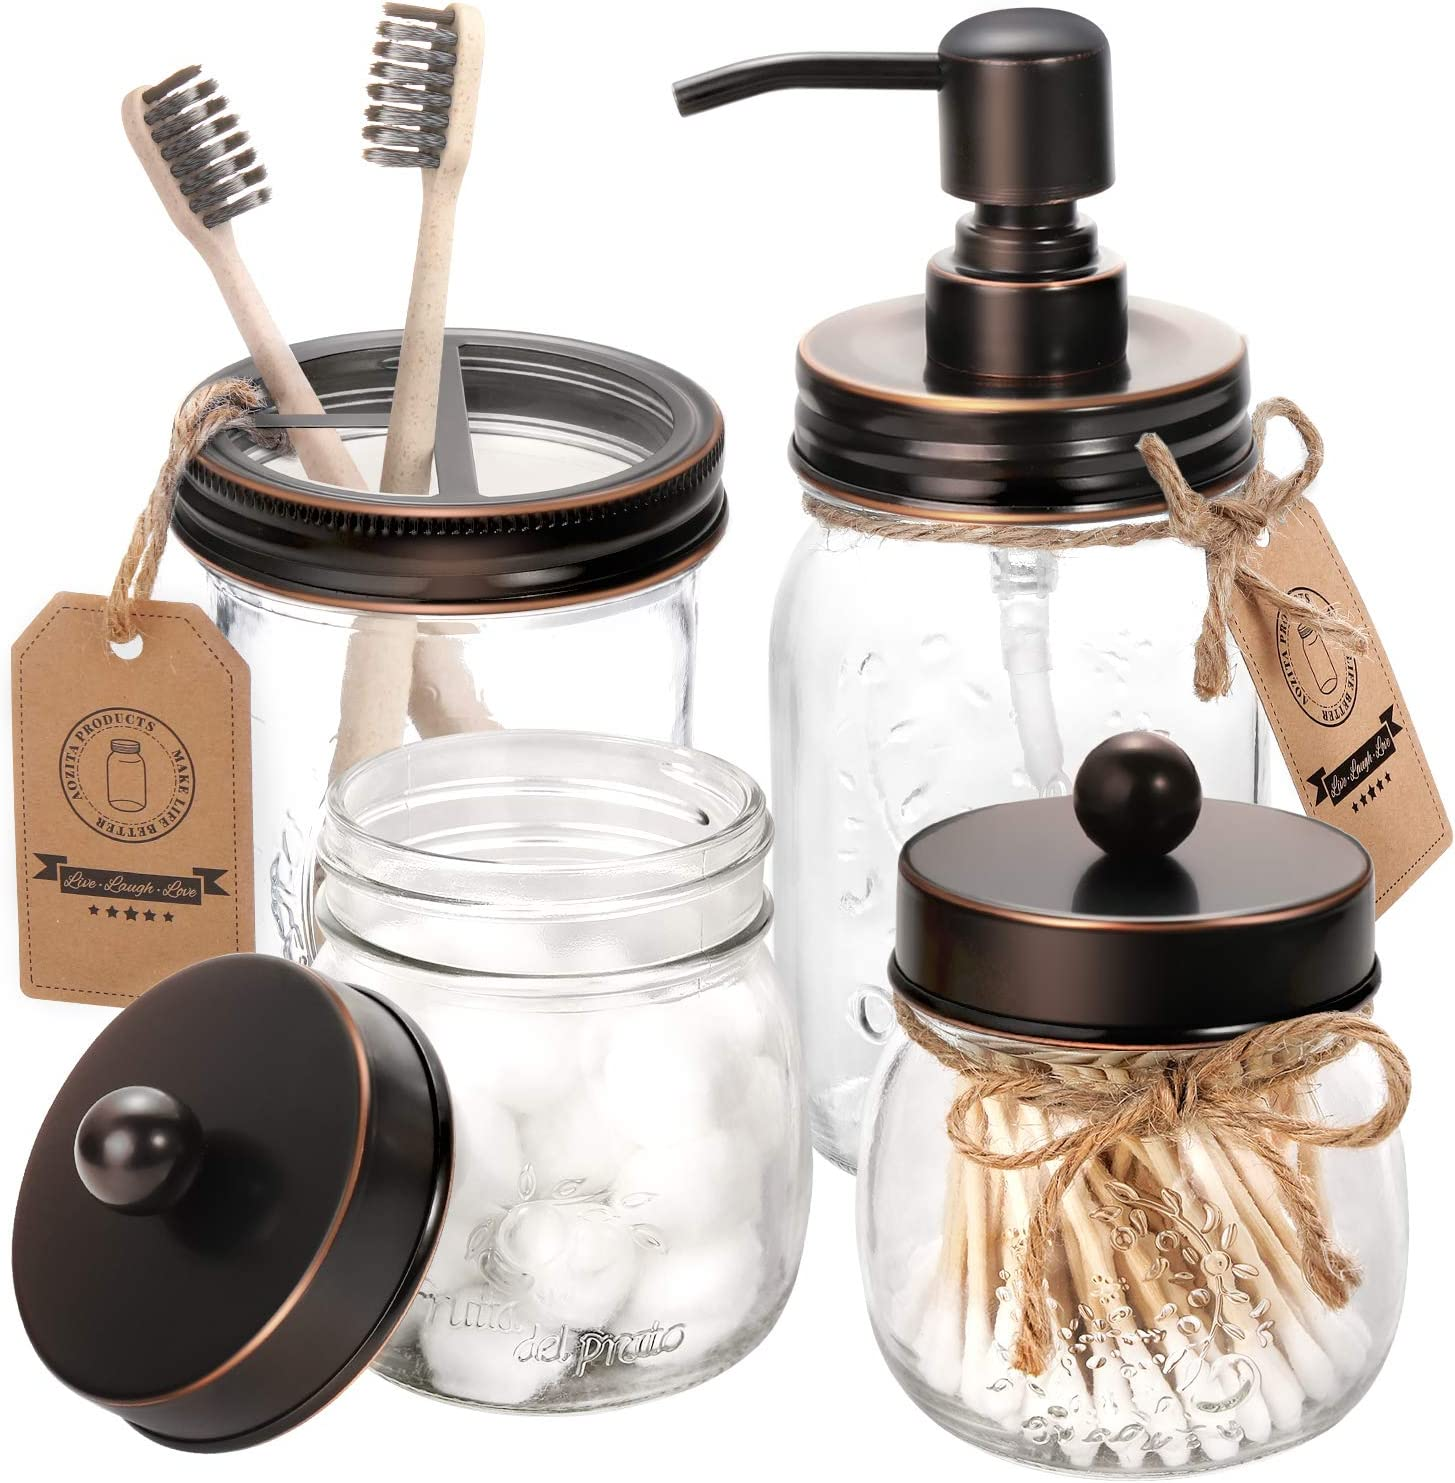 AOZITA Mason Jar Bathroom Accessories Set 4 - Oil Rubbed Bronze - Mason Jar Soap Dispenser & 2 Apothecary Jars & Toothbrush Holder - Rustic Farmhouse Decor, Bathroom Home Decor, Countertop Organize